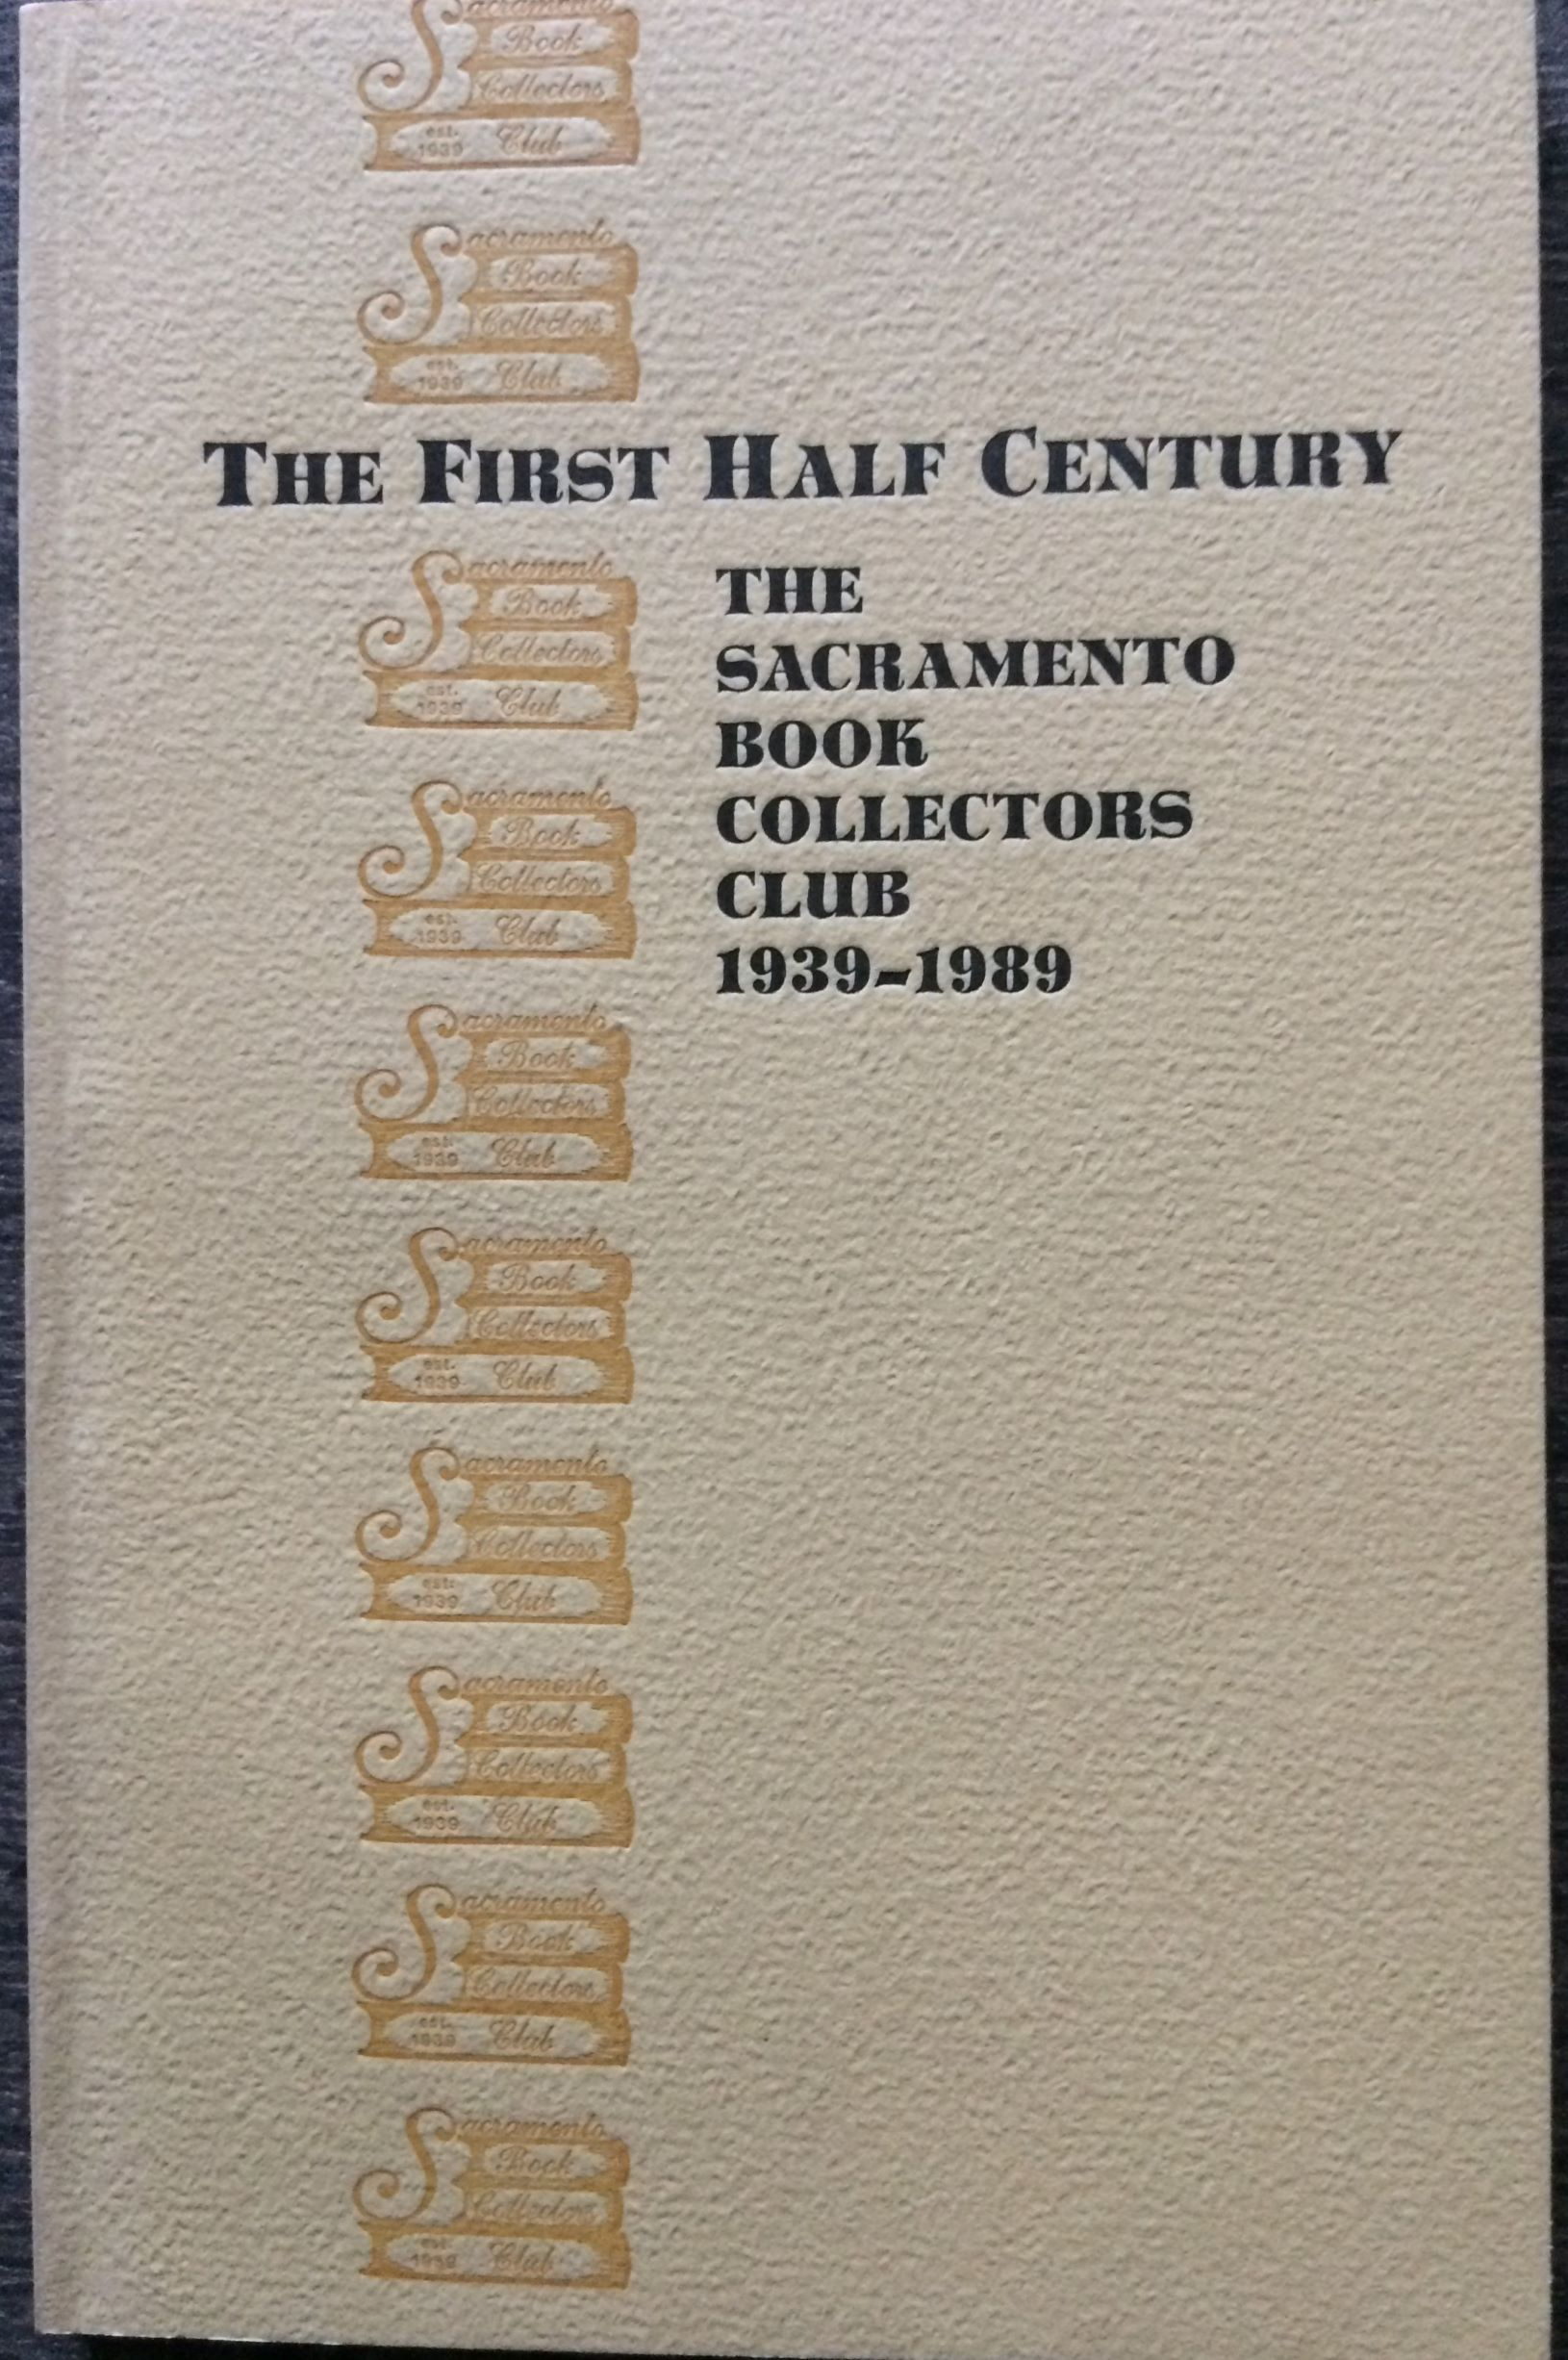 Image for The First Half Century. The Sacramento Book Collectors Club 1939-1989, Dedicated to the Printed Word.  With a bibliography of the club's publications compiled by Vincent J. Lozito.